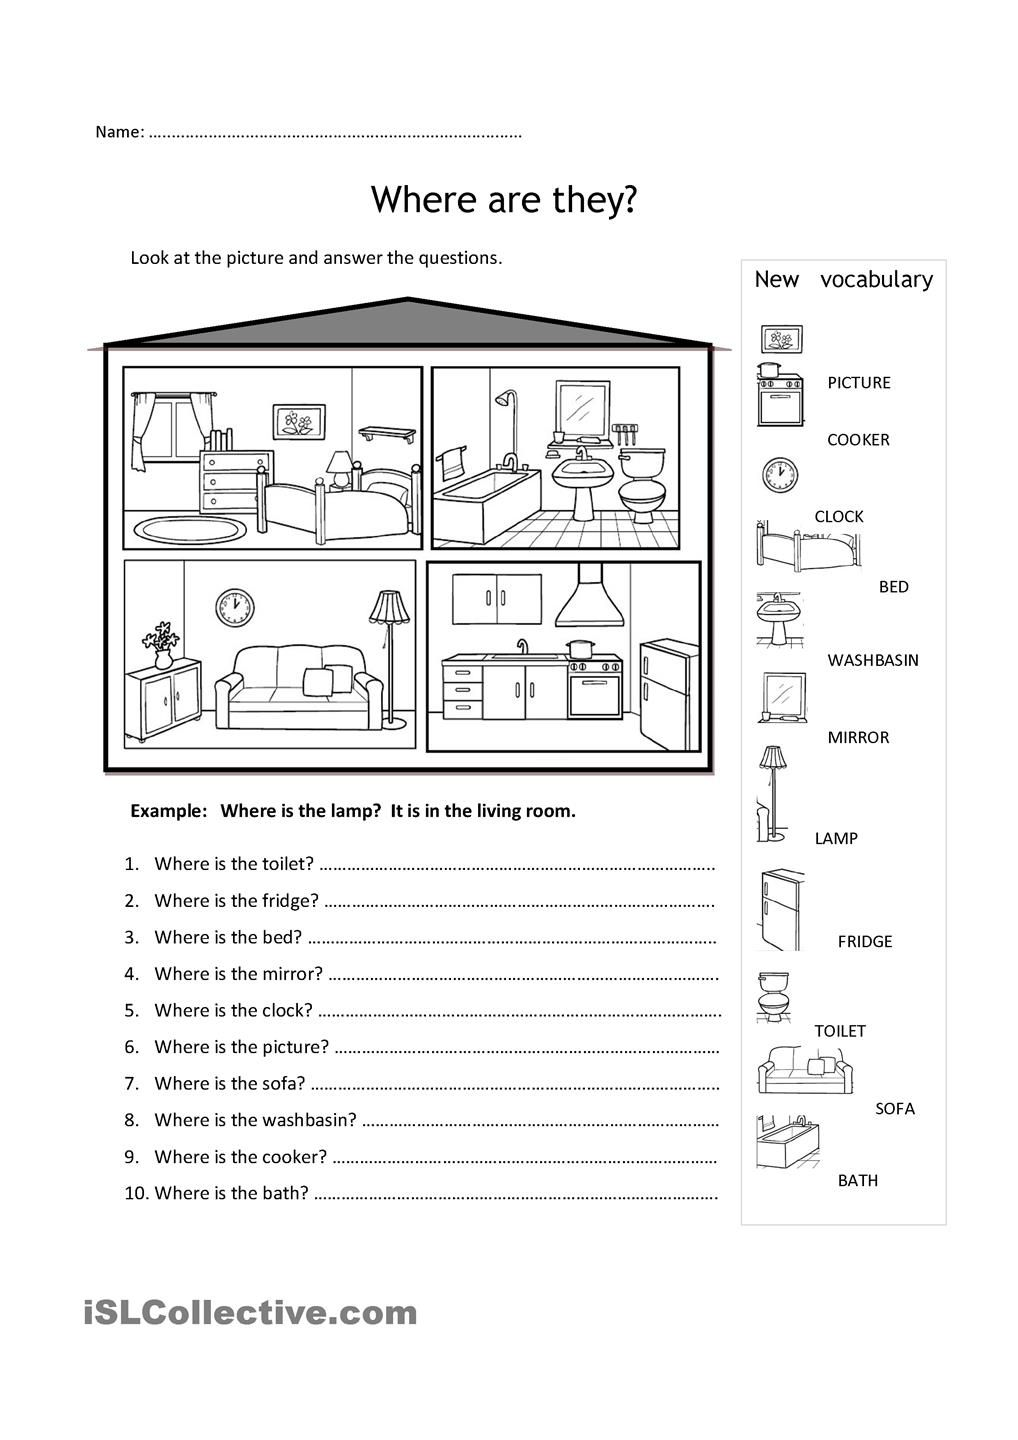 Rooms in the house | english language learners | Pinterest ...